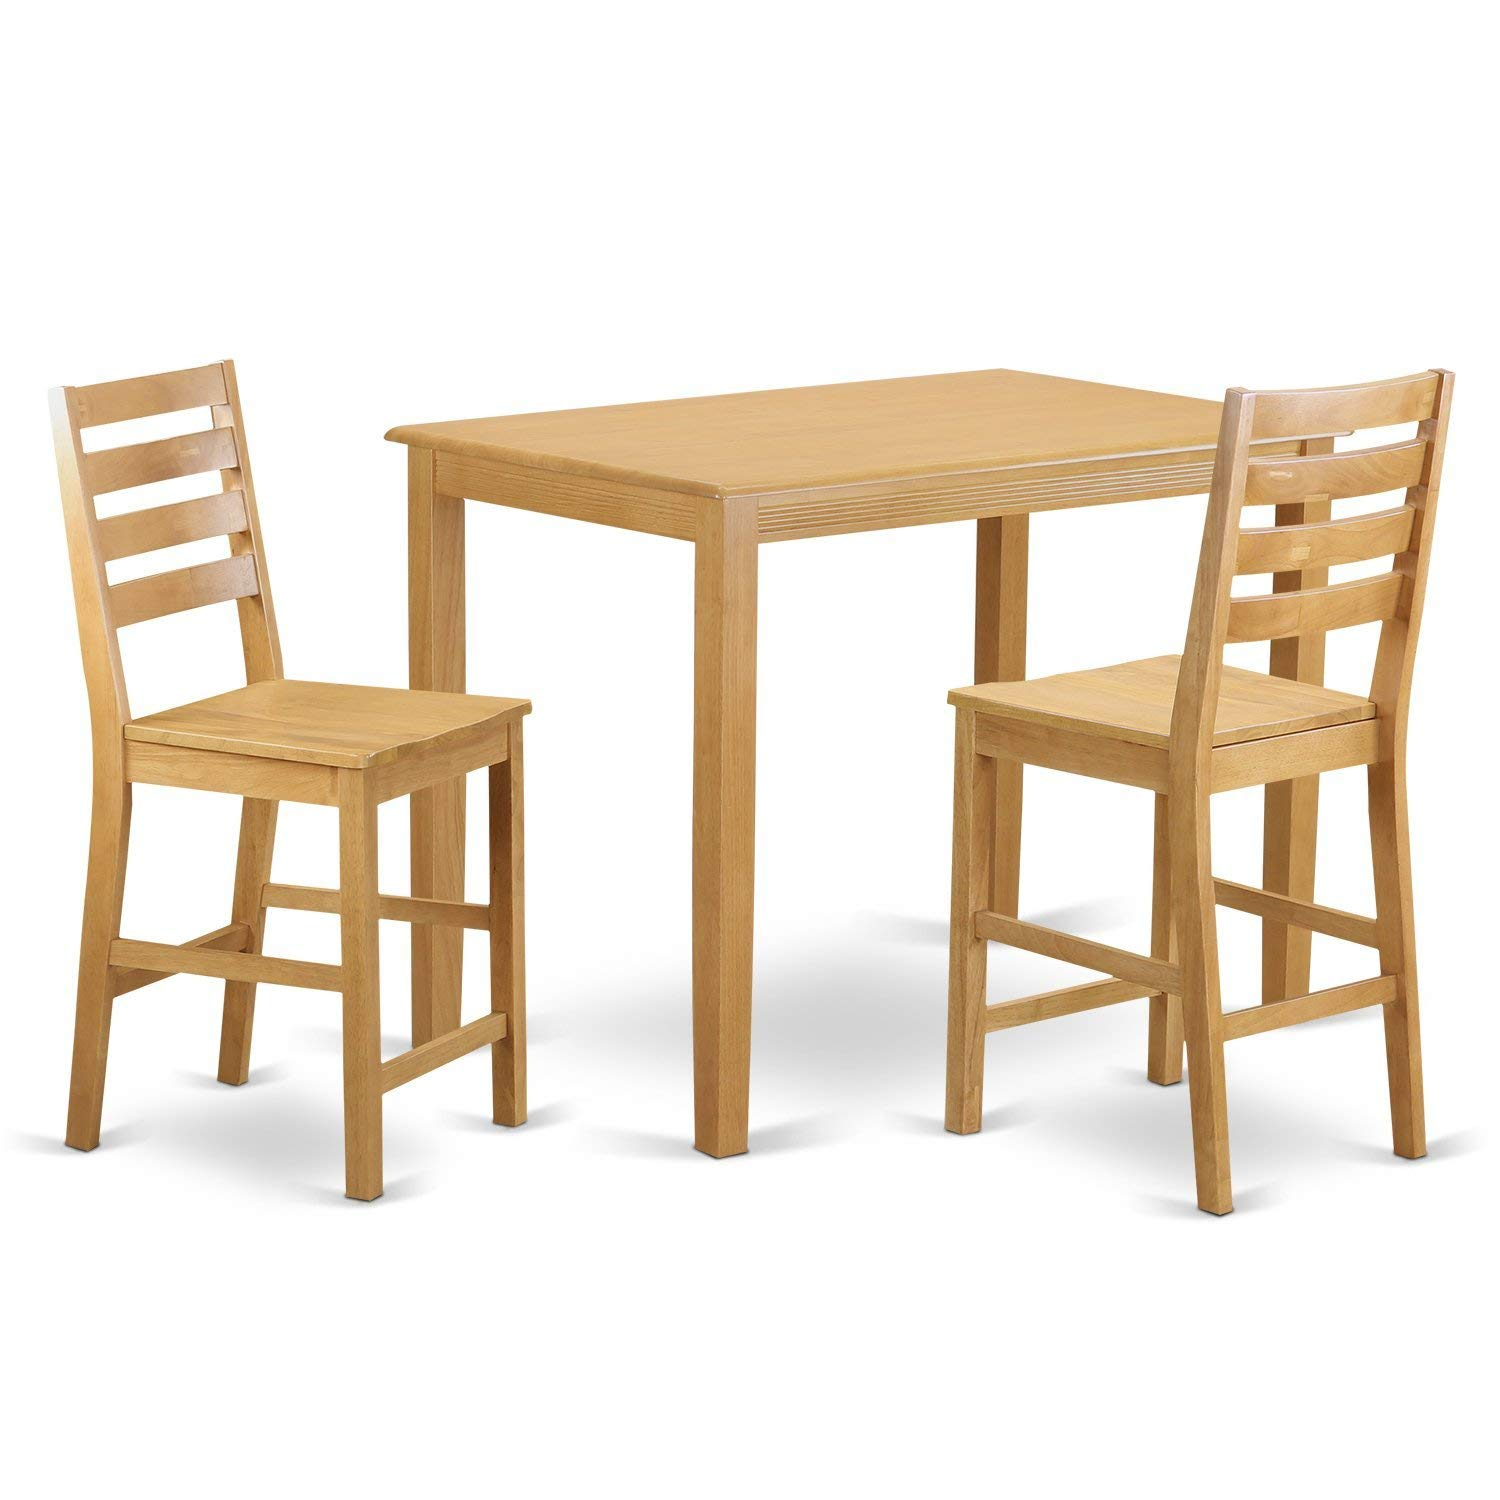 East West Furniture YACF3-OAK-W 3 Piece Counter Height Table and 2 Dining Chair Set